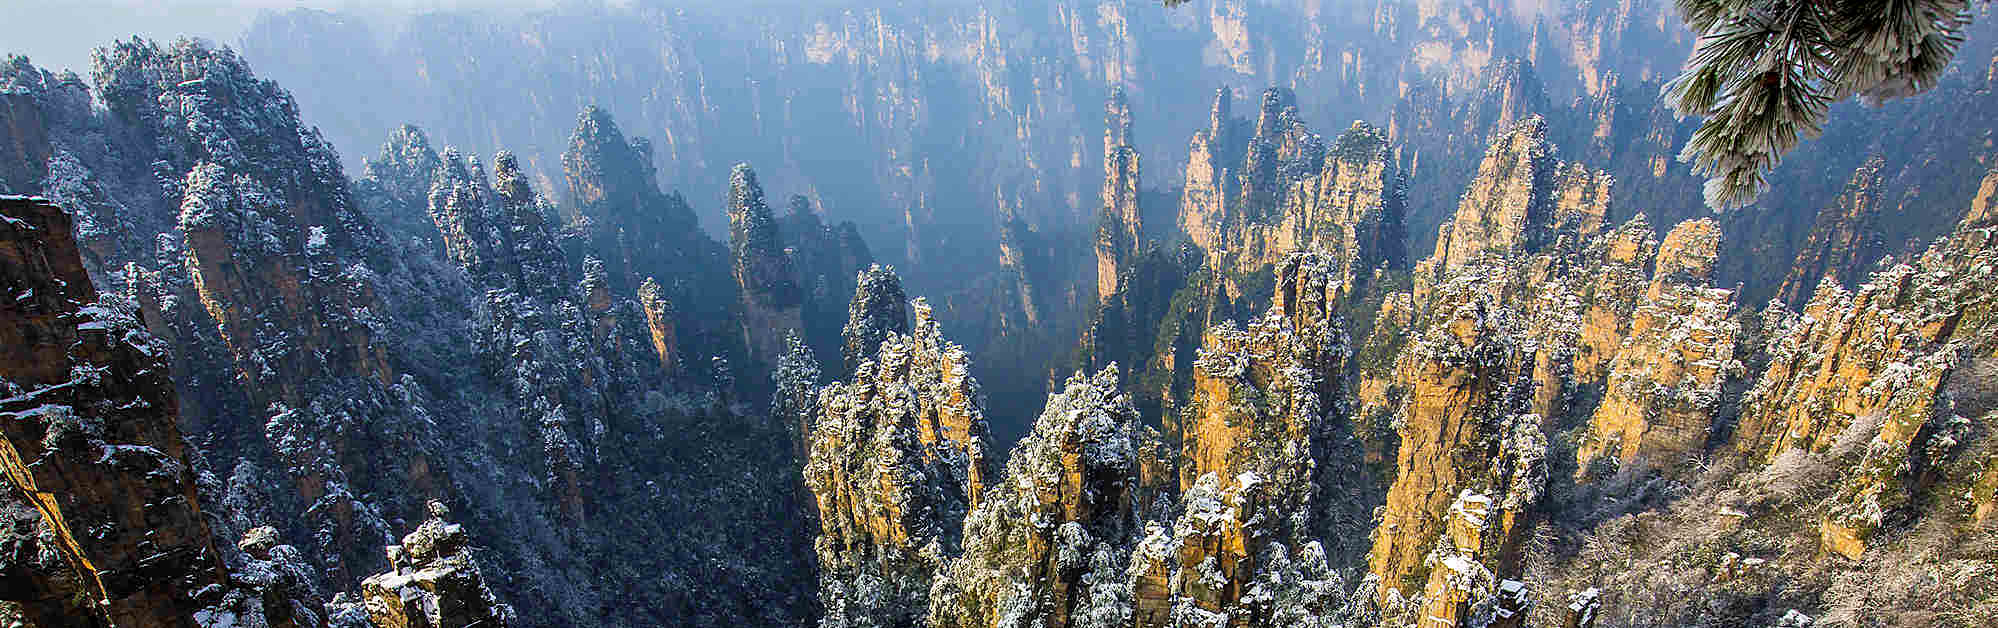 One-Day Zhangjiajie National Forest Park Tour